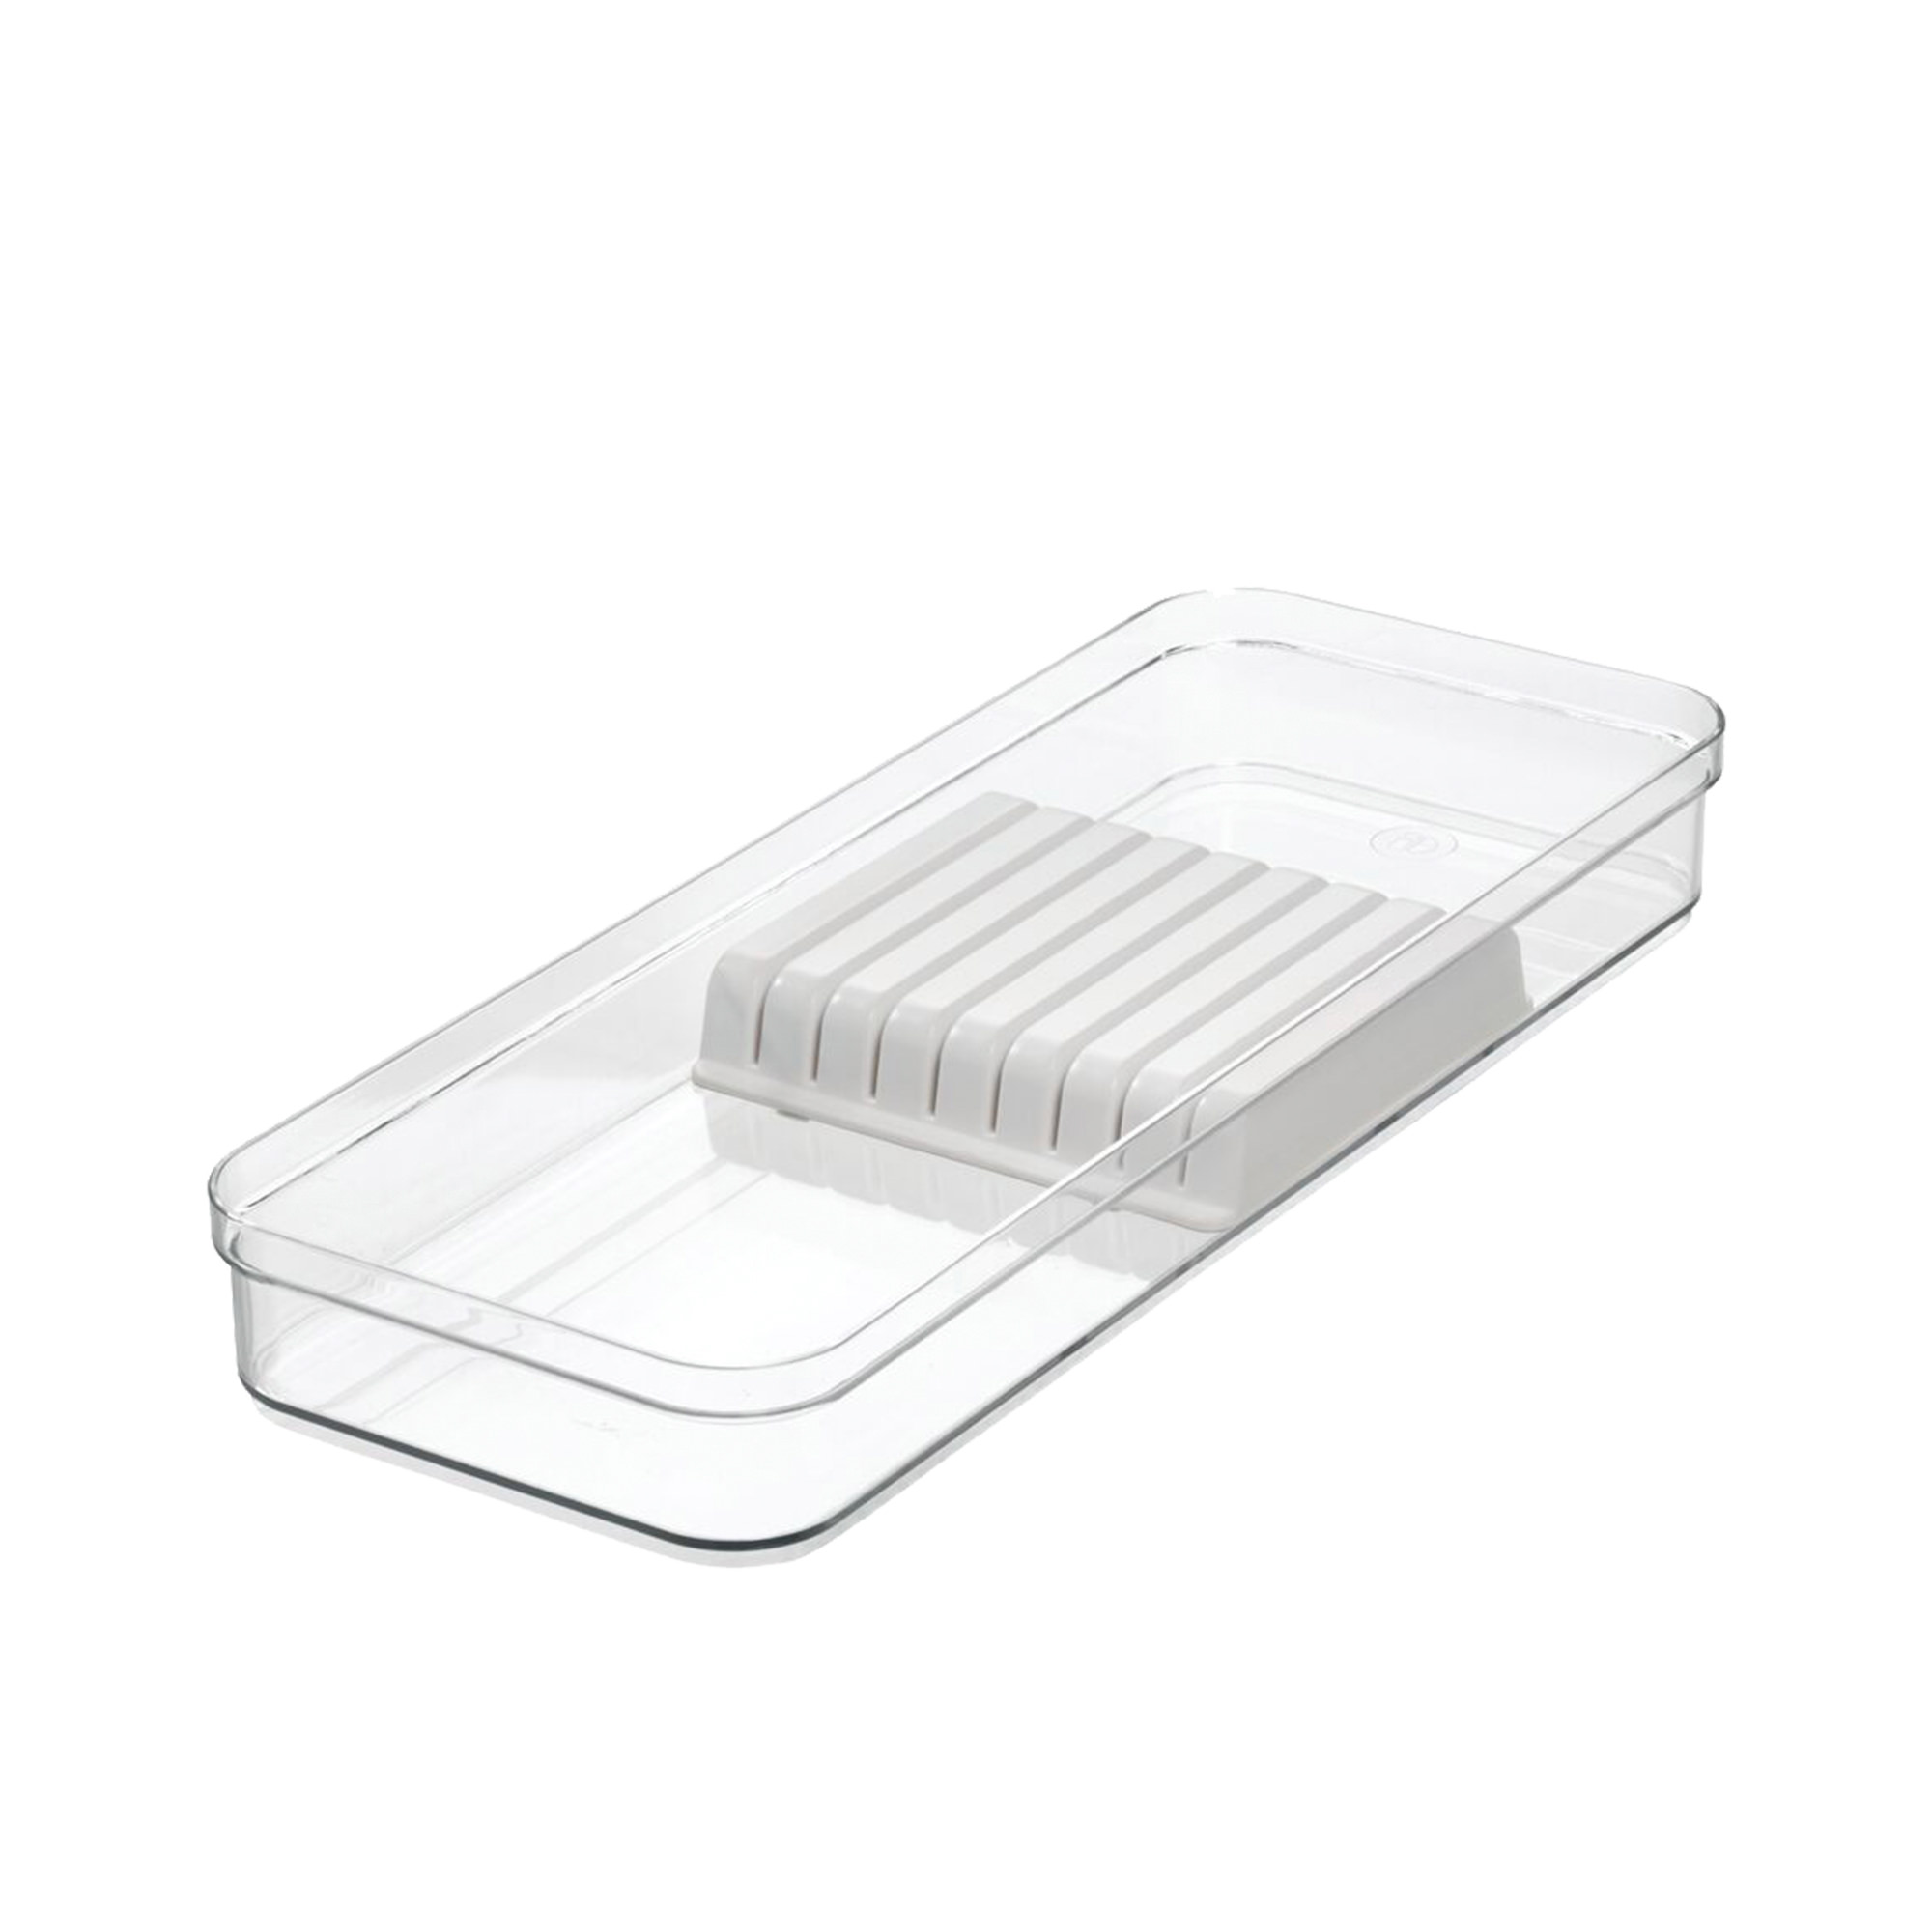 Interdesign Crisp Knife Organiser 16x41.5x5cm